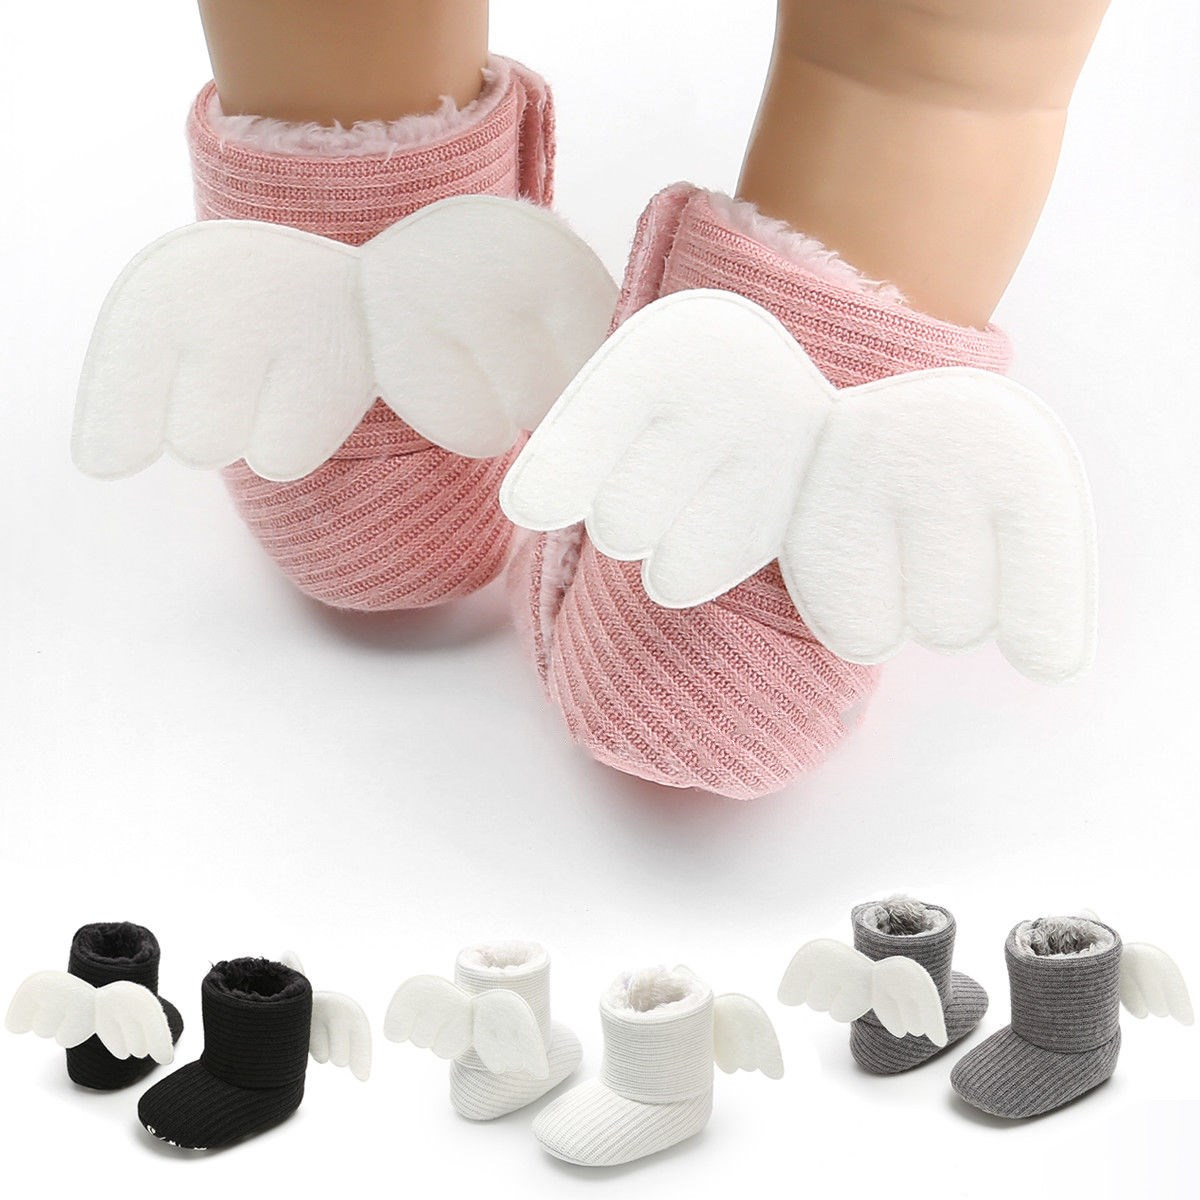 Soft Baby Winter Booties Socks Newborn Warm Gifts Baby Cute Crib Shoes Little Kids Lovely Shoes With Angle Wings 0-18Months